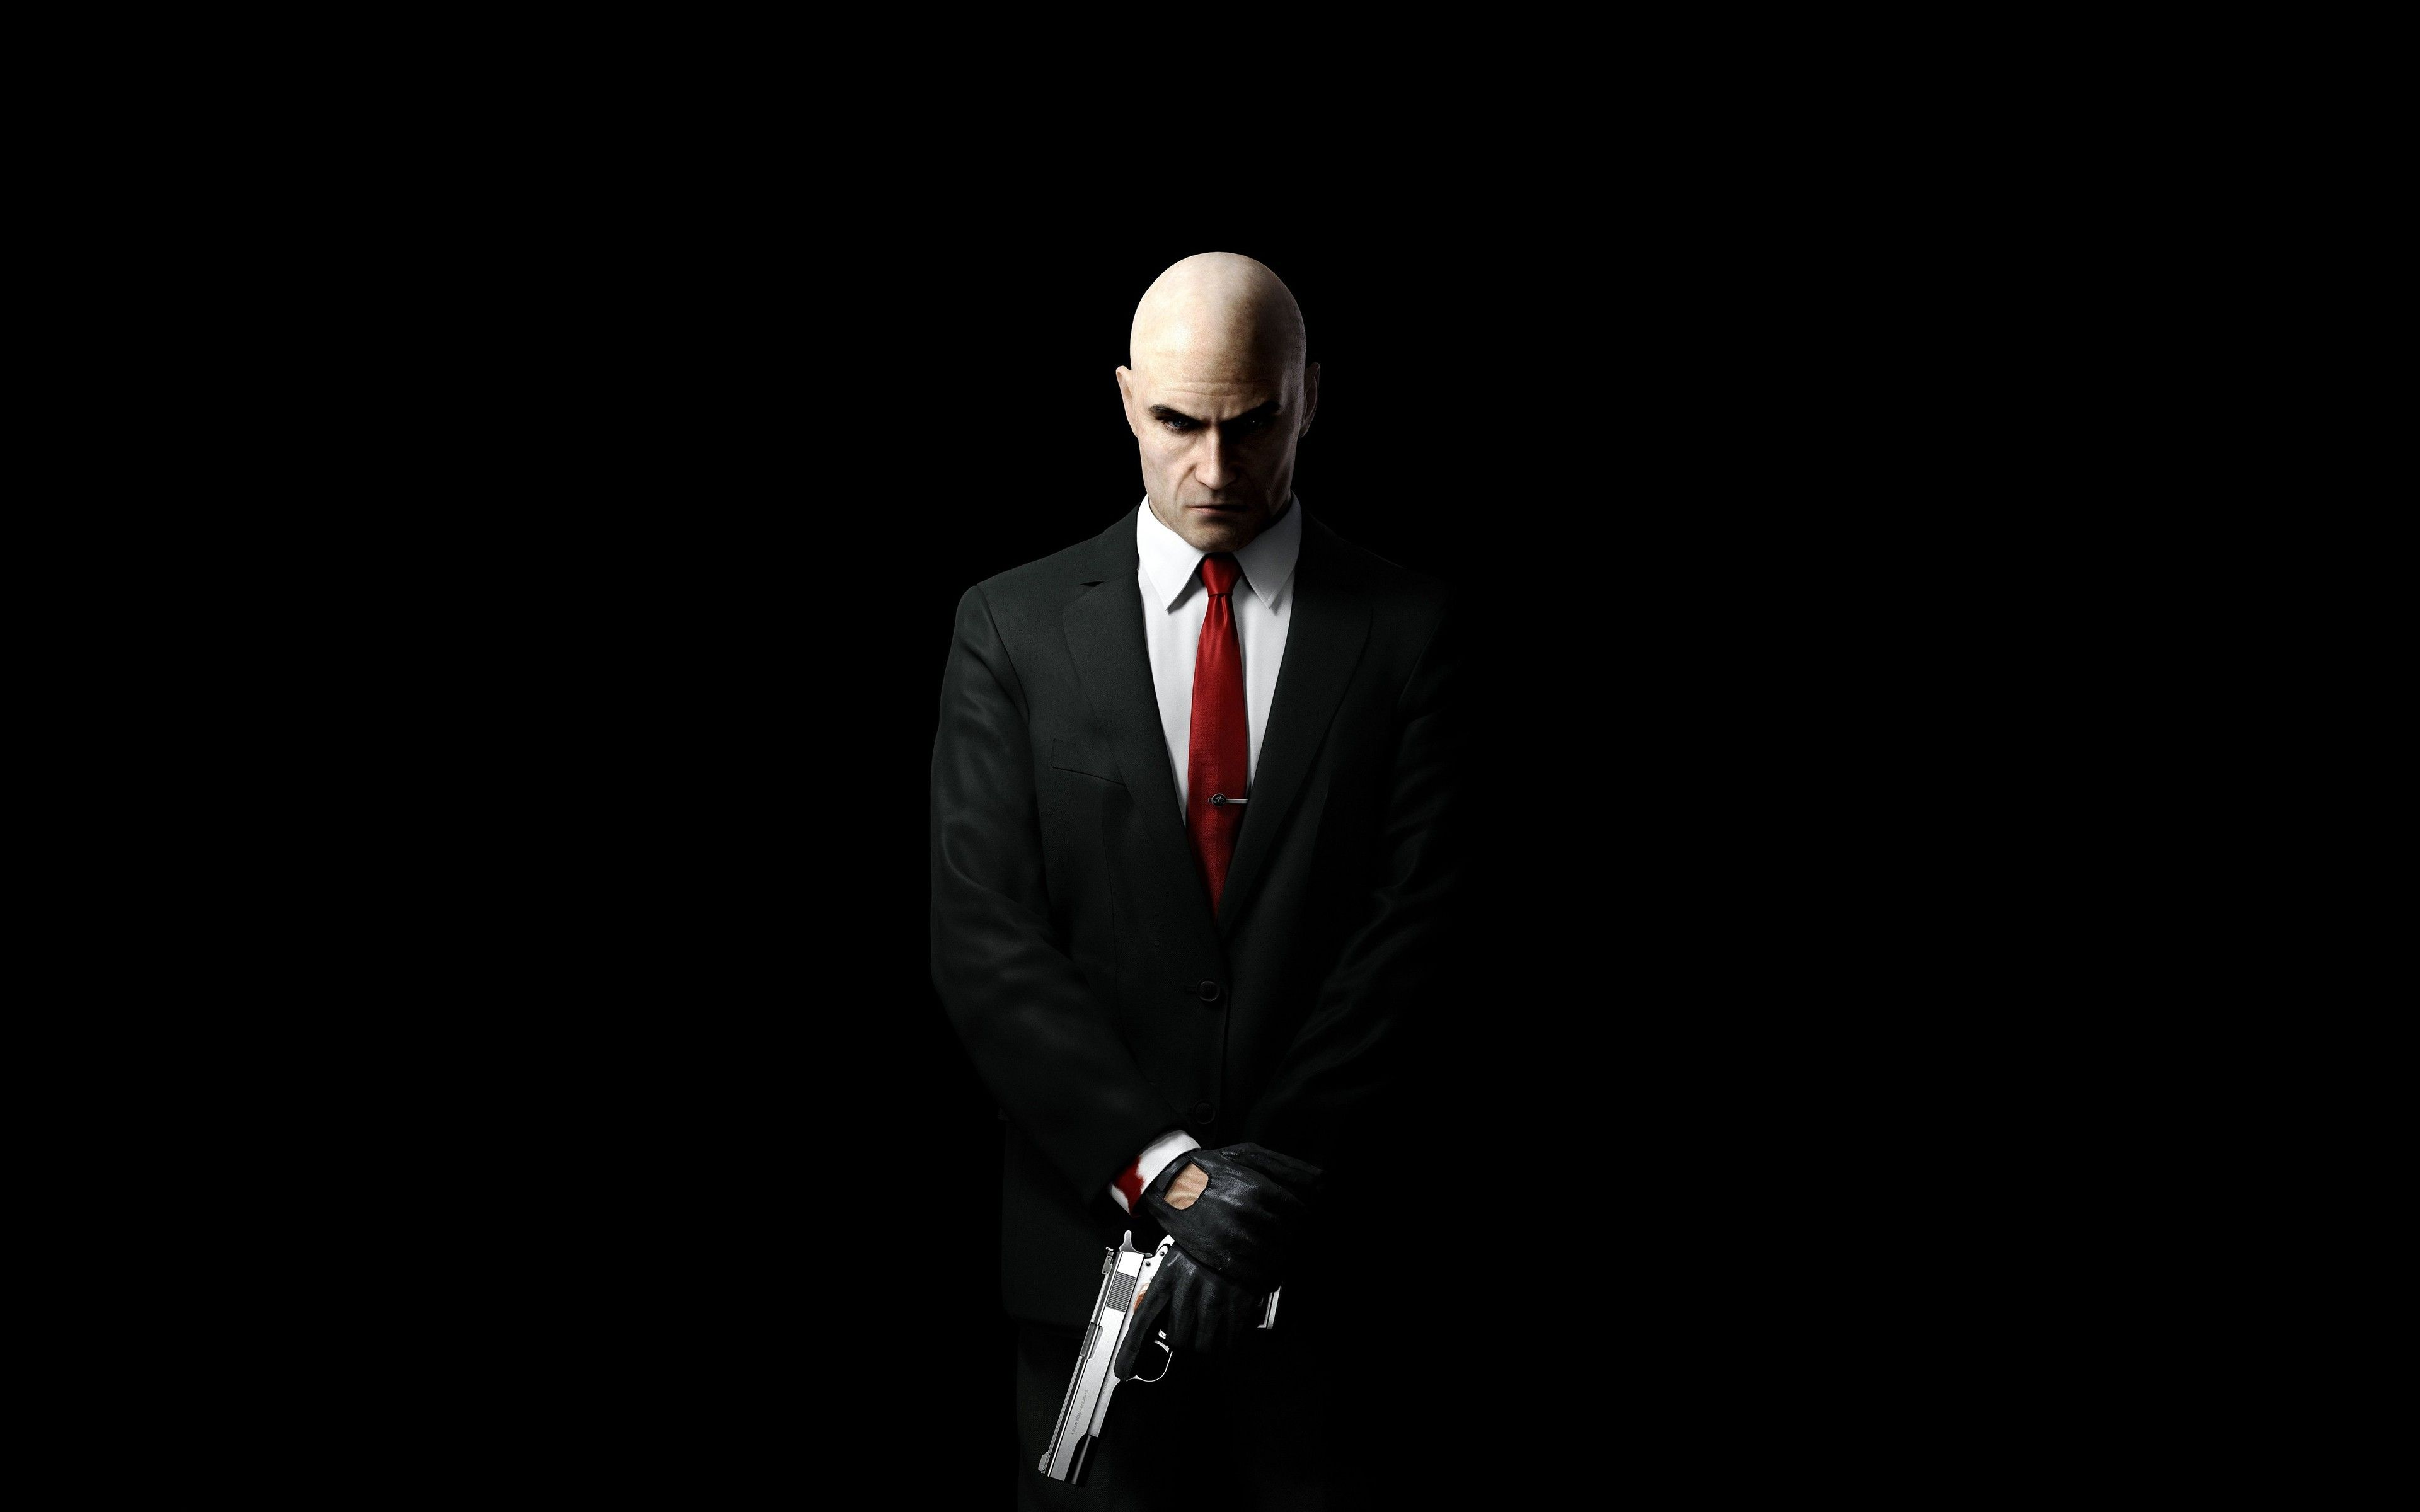 Agent 47 Wallpapers Top Free Agent 47 Backgrounds Wallpaperaccess